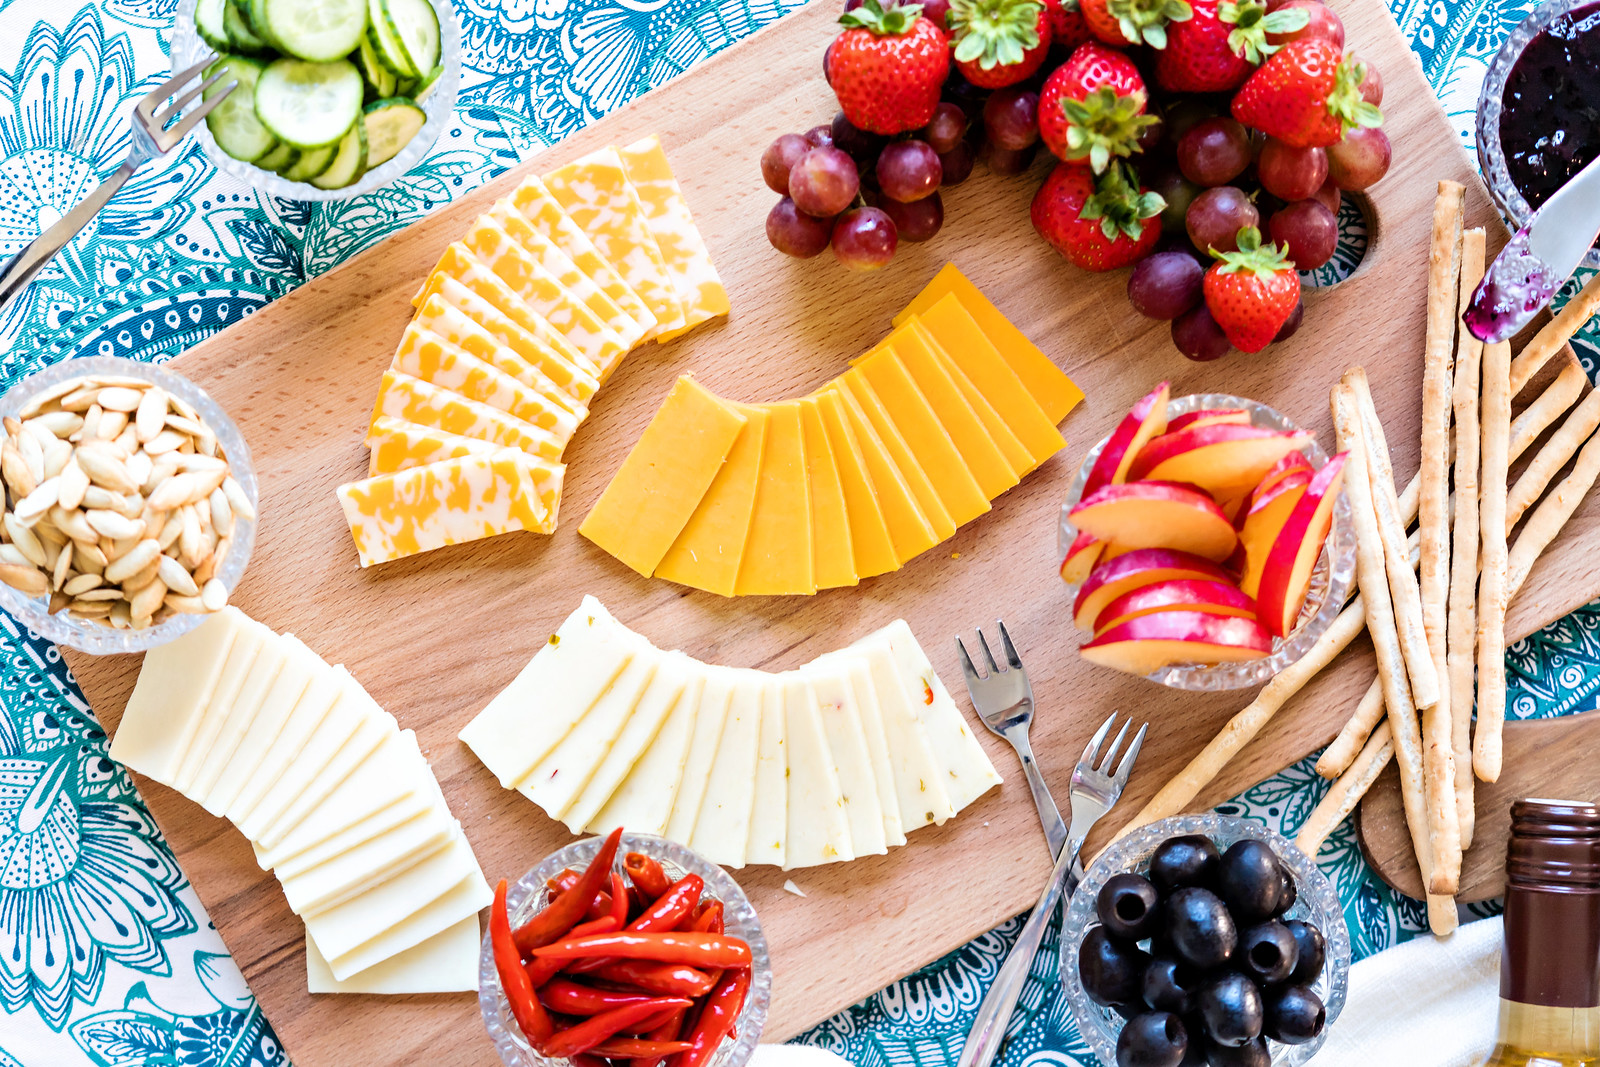 inexpensive cheese platter ideas